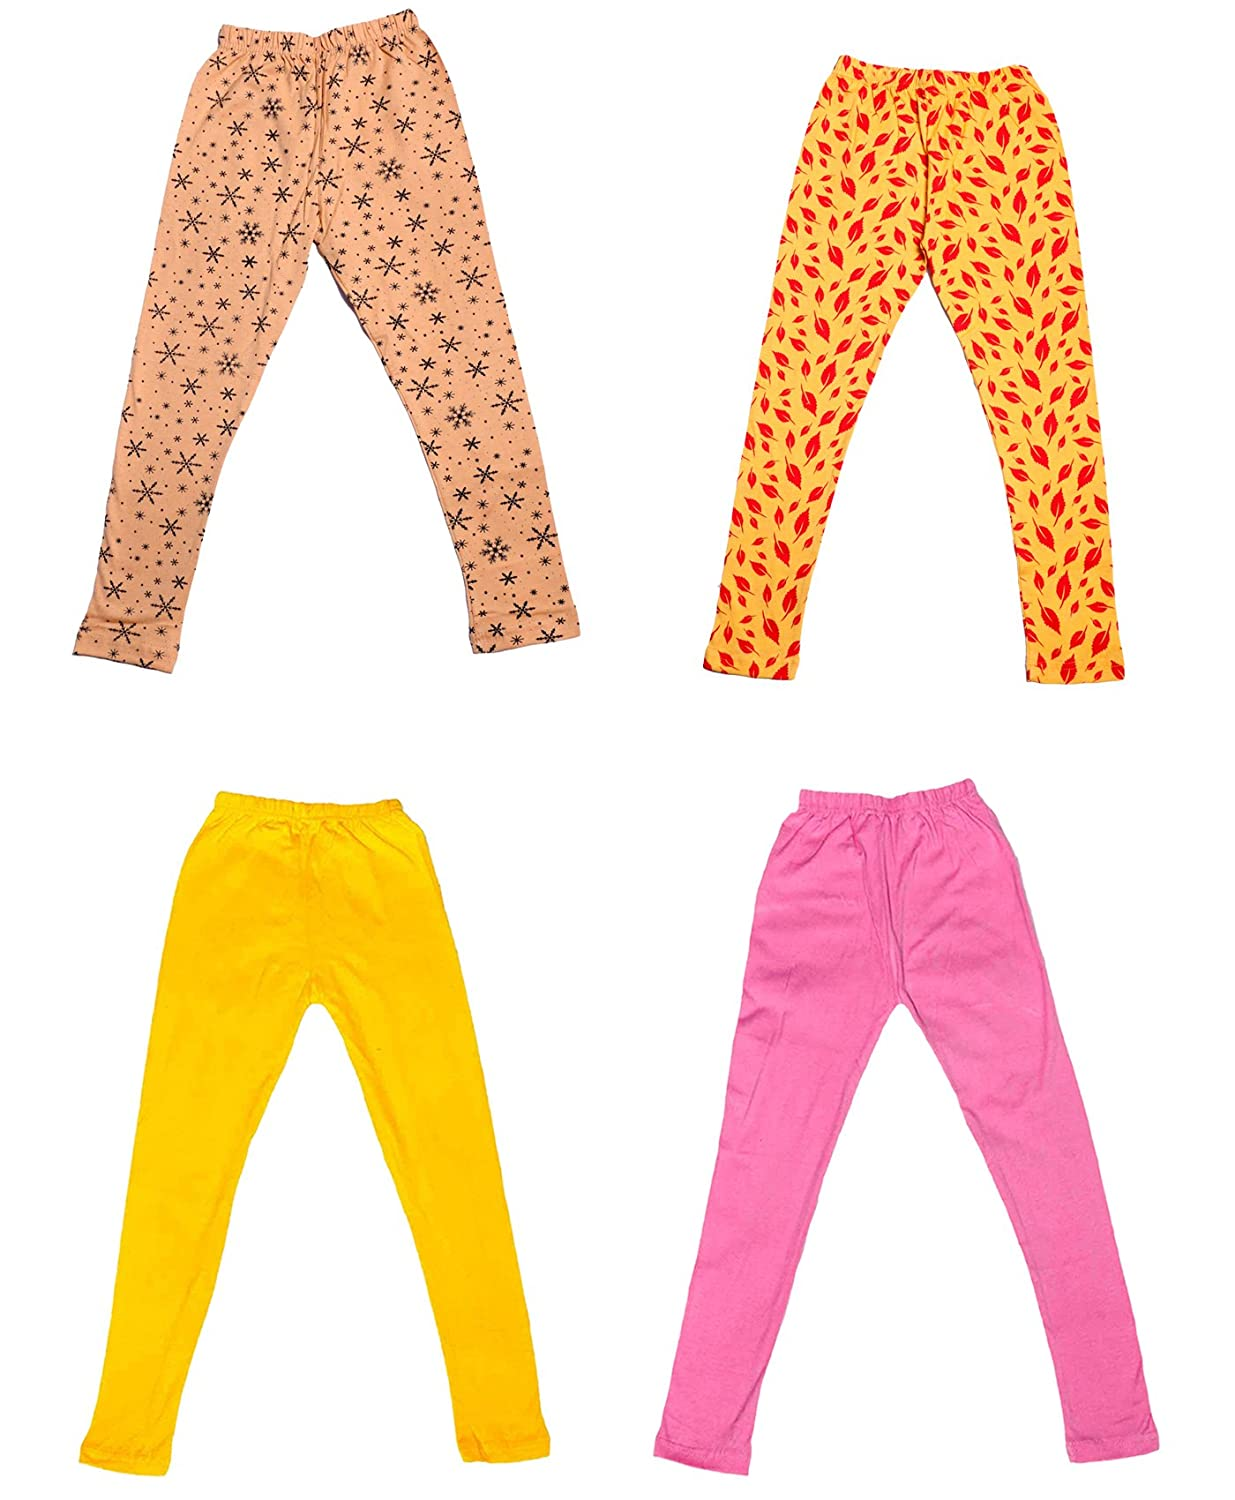 /_Multicolor/_Size-5-6 Years/_71407081819-IW-P4-28 Pack Of 4 Indistar Girls 2 Cotton Solid Legging Pants and 2 Cotton Printed Legging Pants